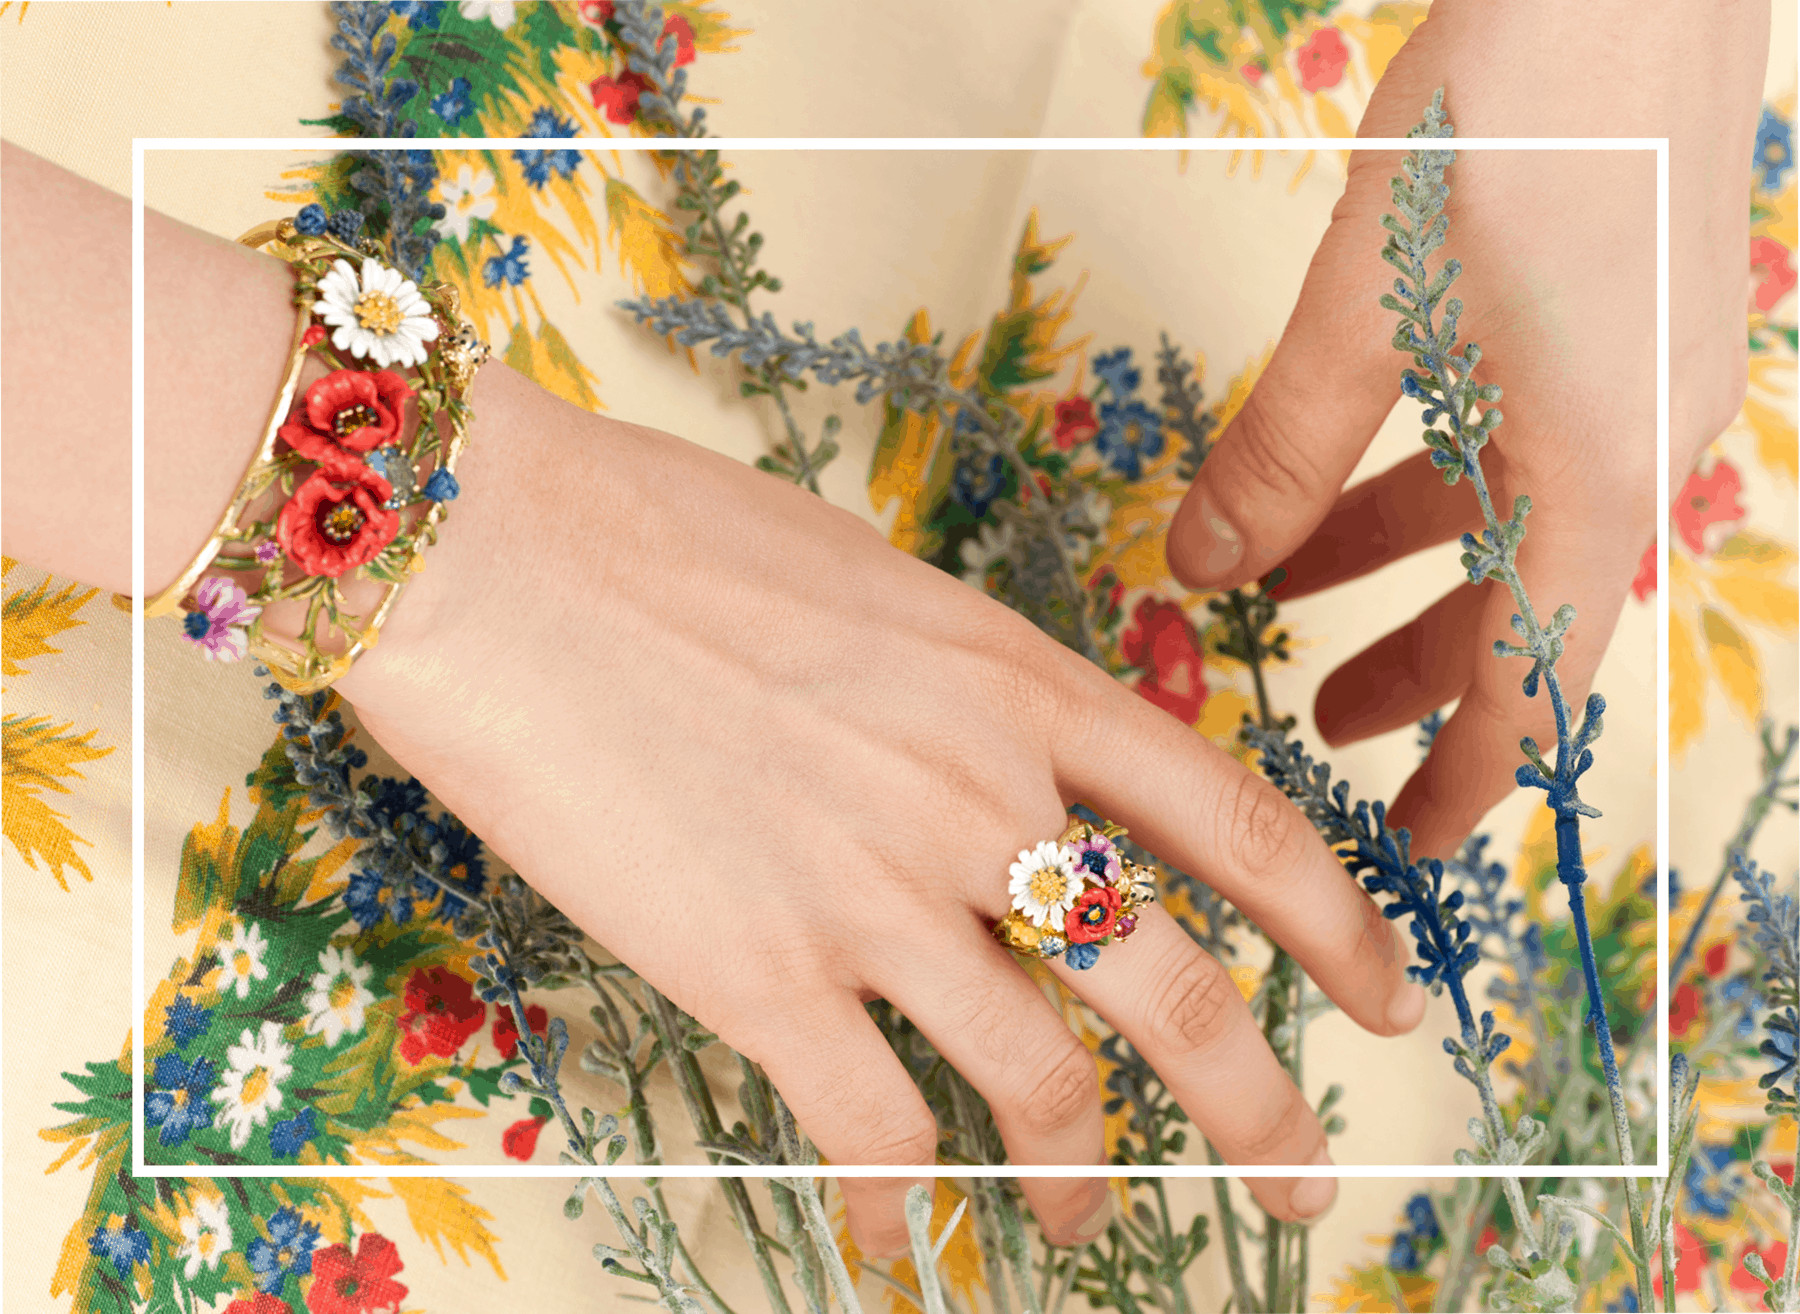 OuiPlease OuiBlog French Designer Jewelry Brand Les Néréides